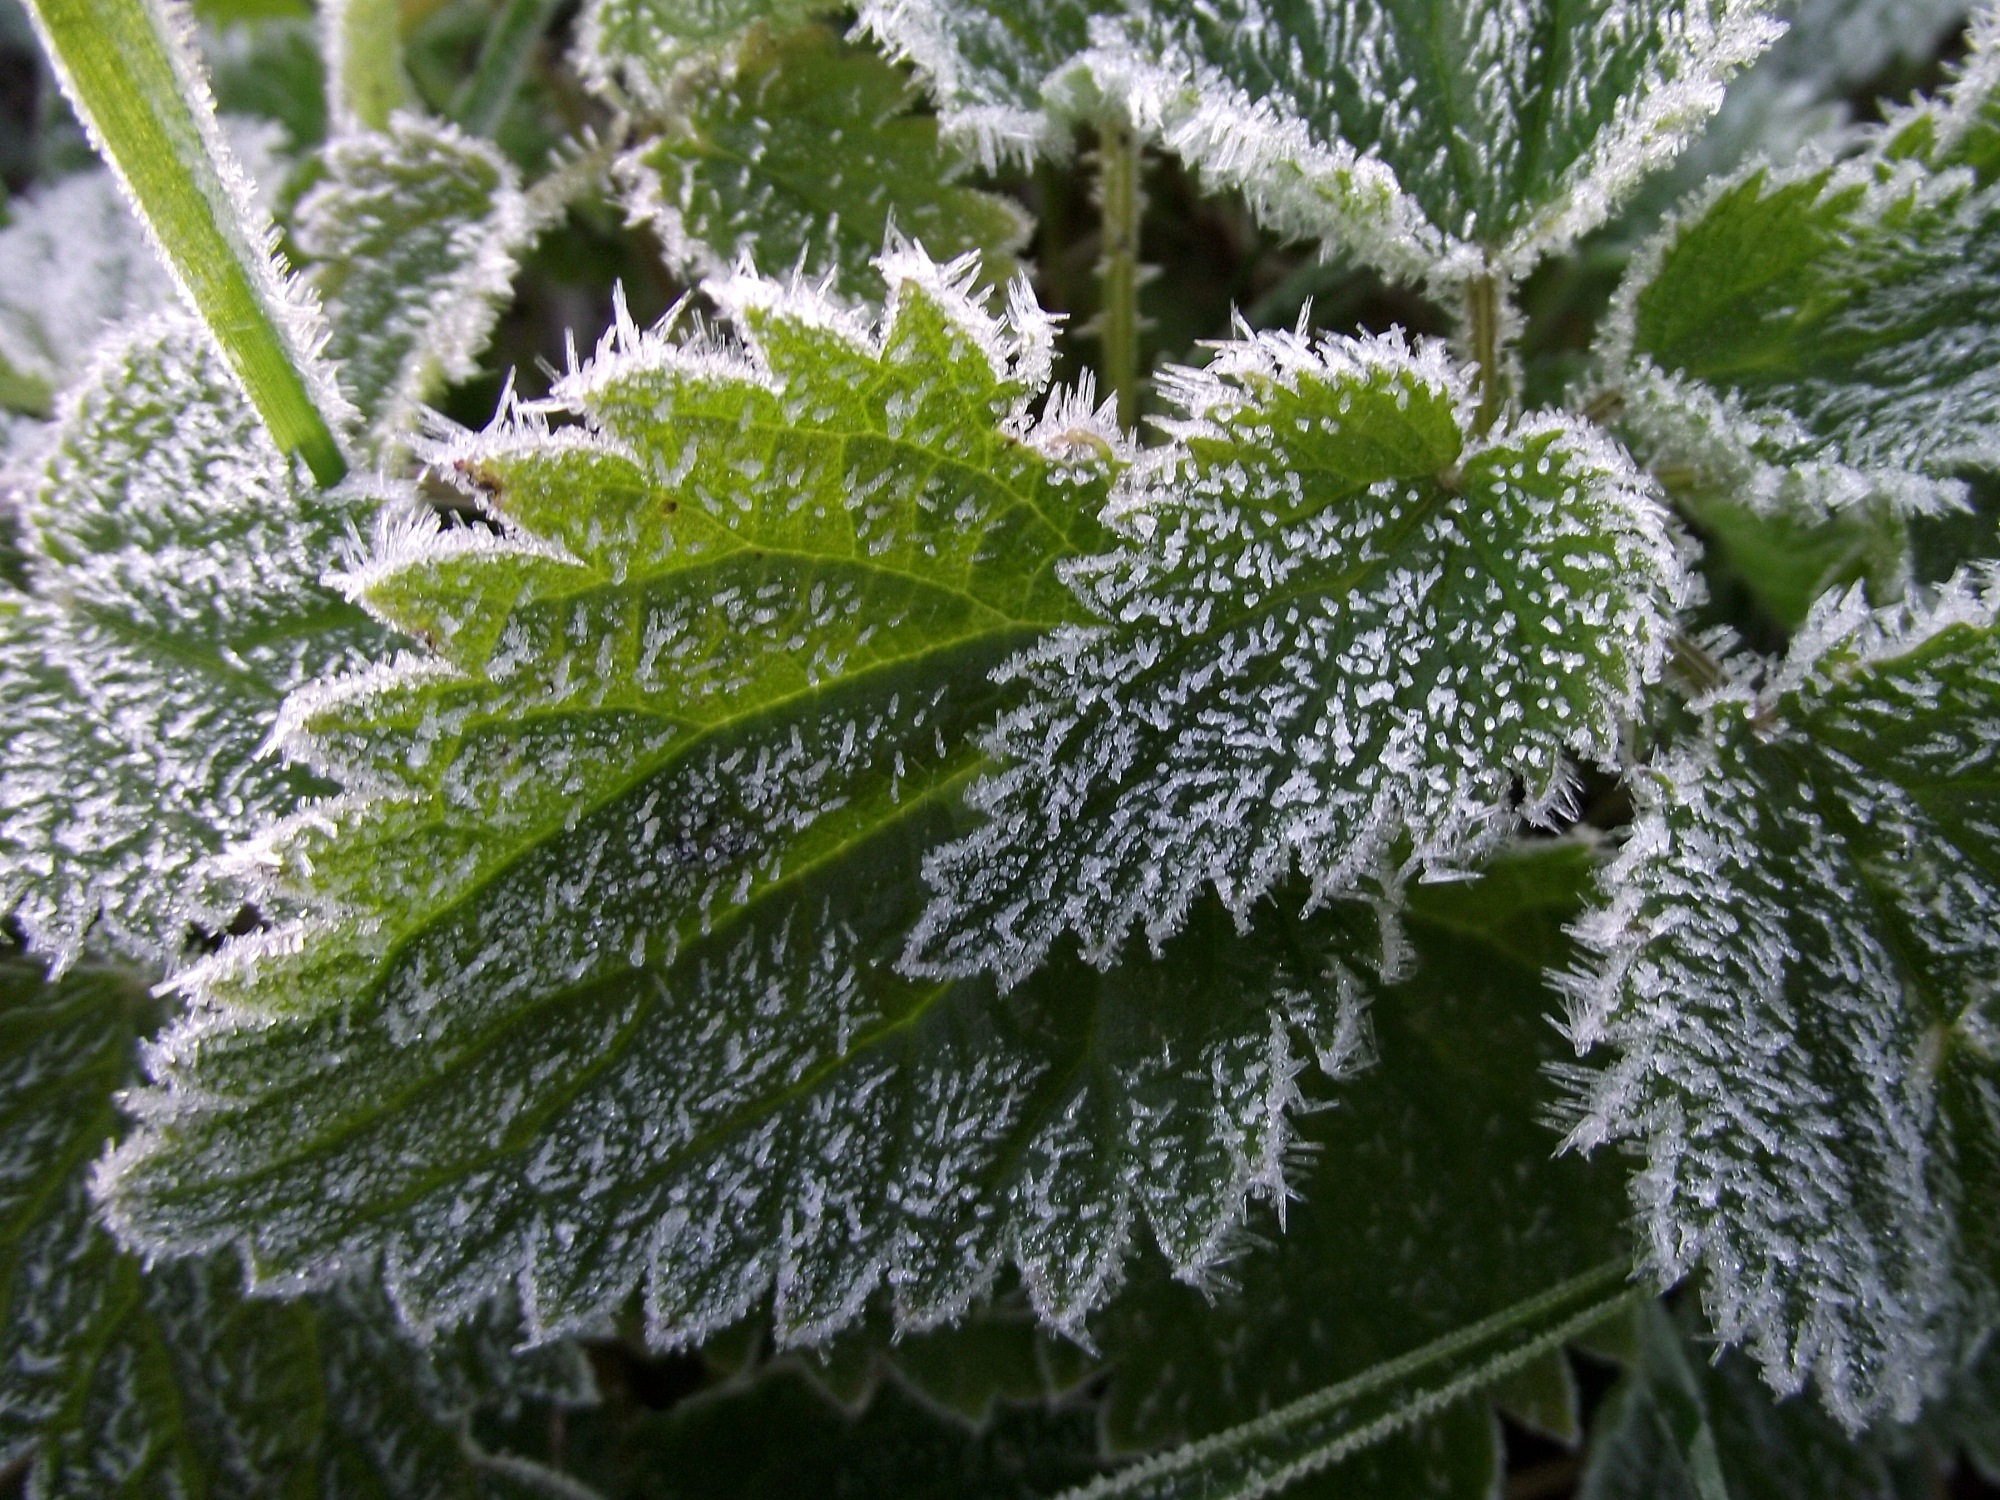 https://i1.wp.com/upload.wikimedia.org/wikipedia/commons/a/a5/Frost_on_nettle_leaves.jpg